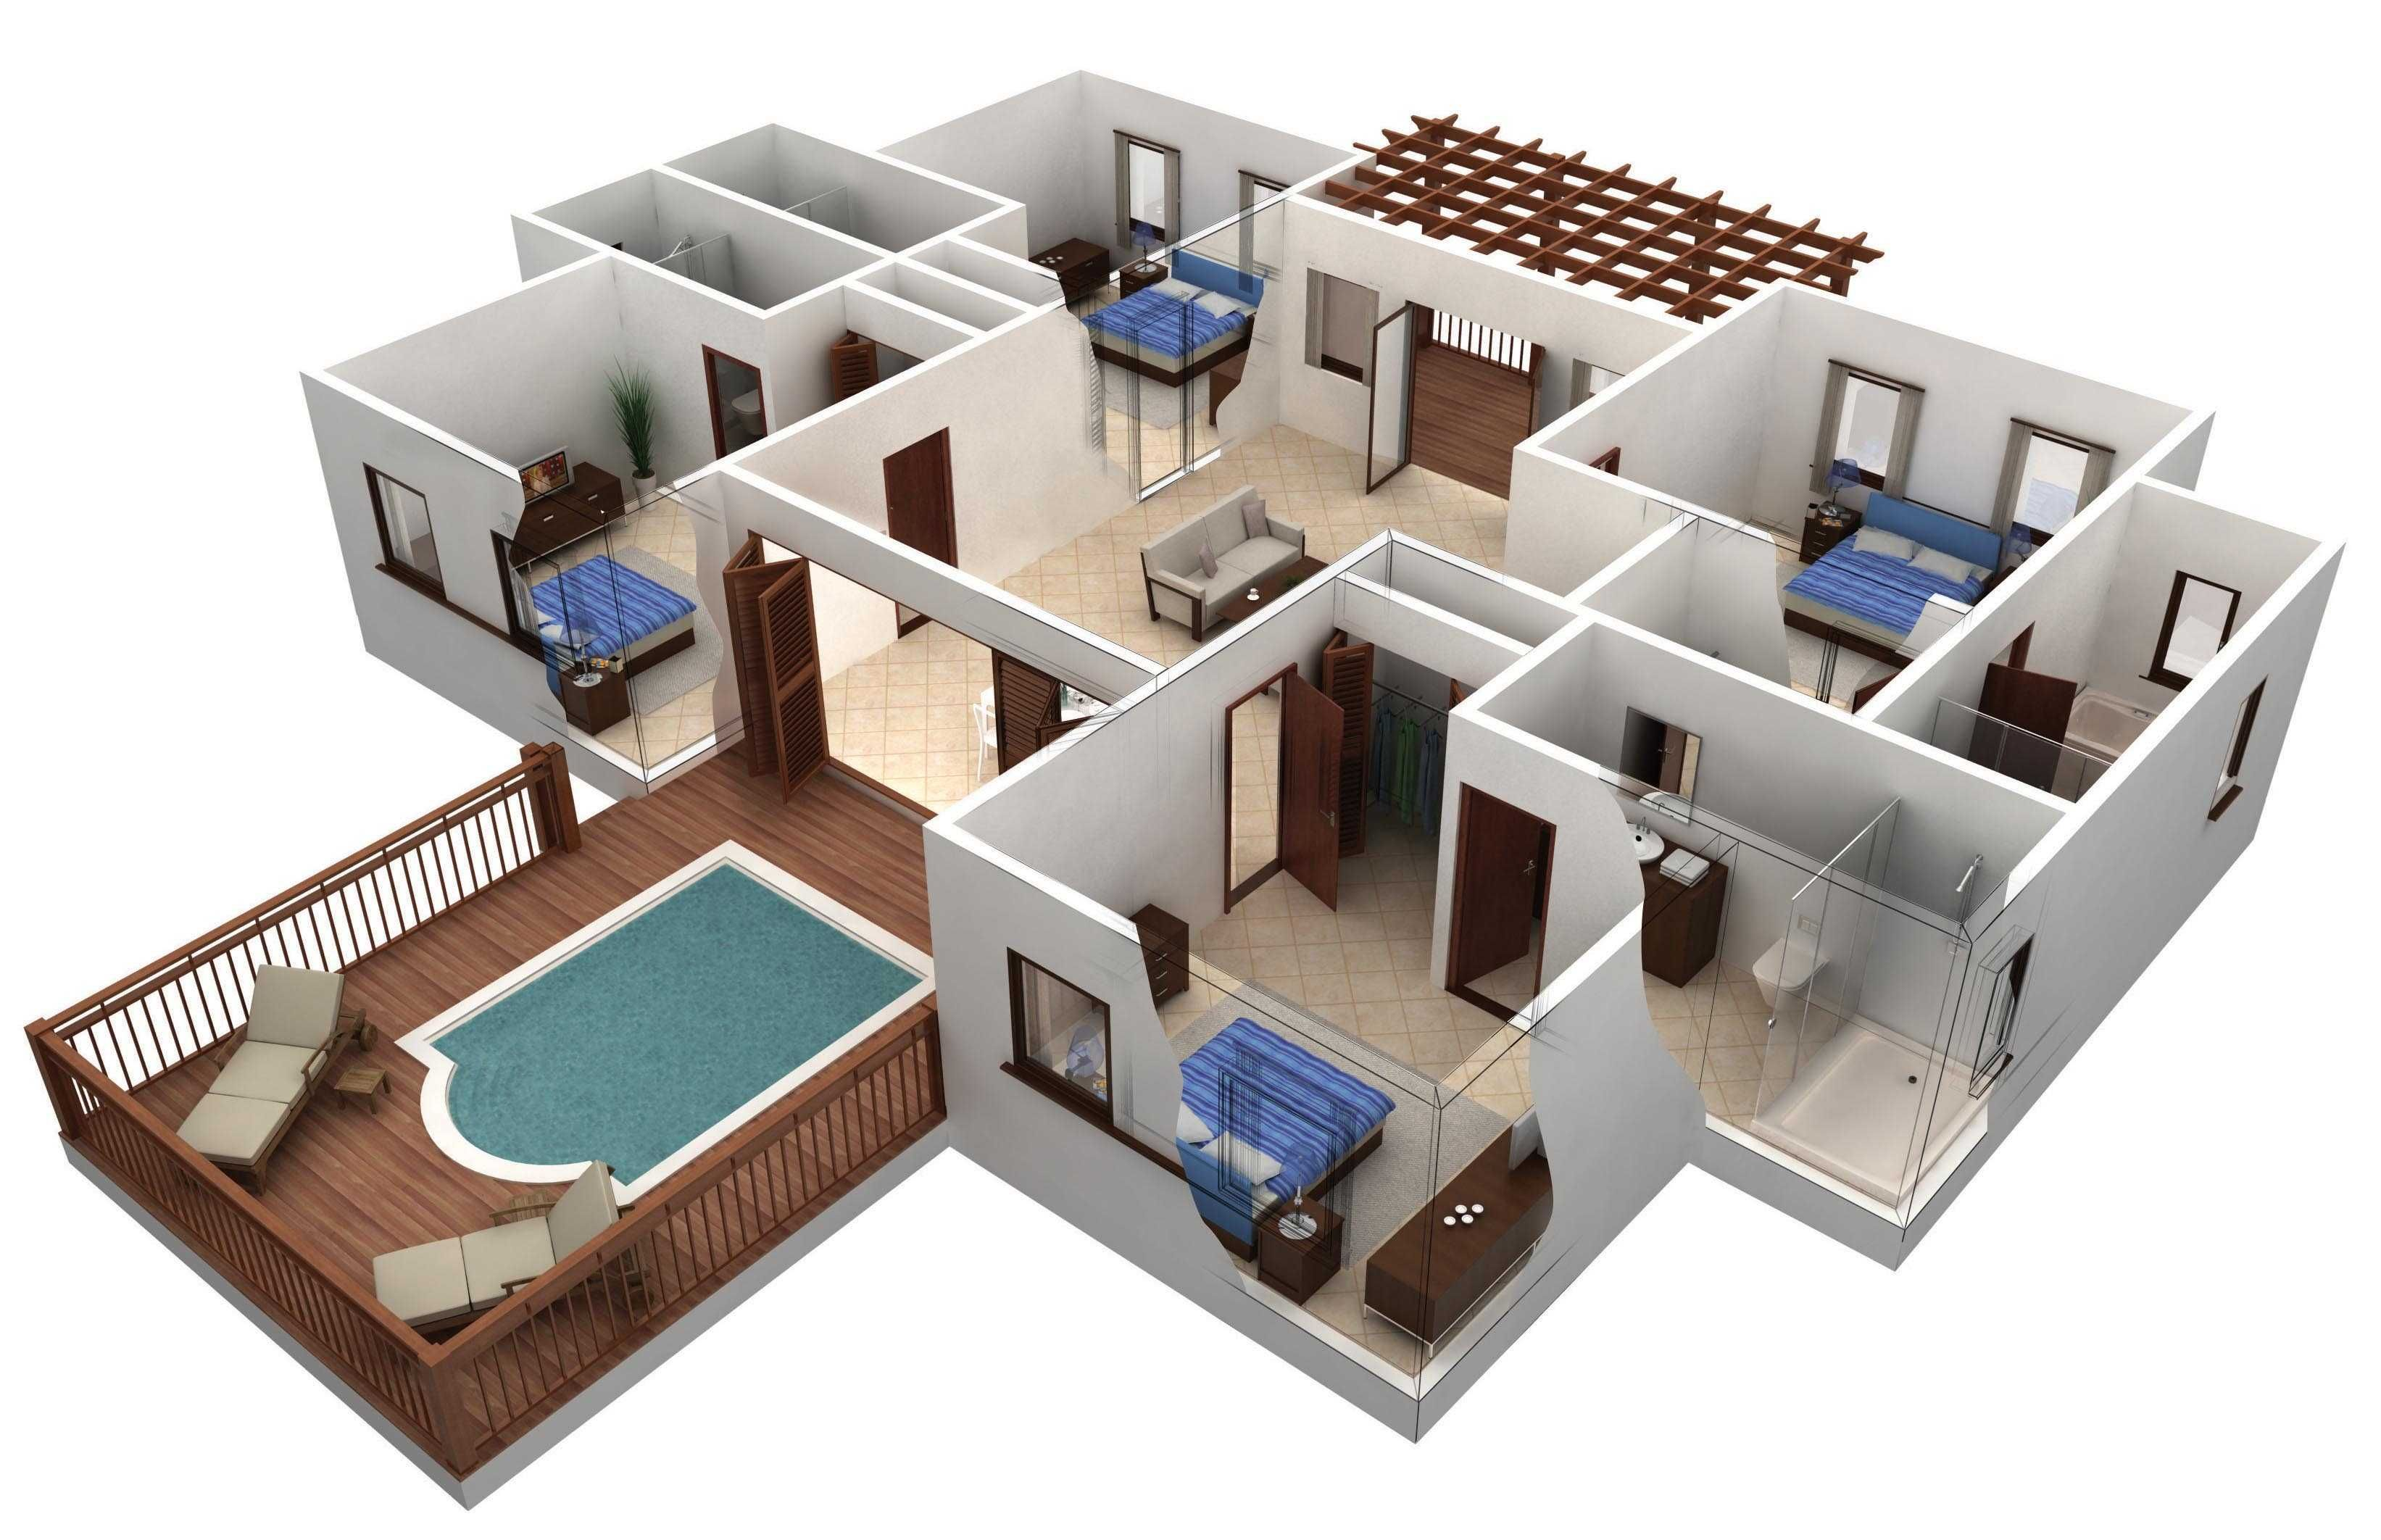 4 Bedroom Simple Design 3d House Plans Smart House Plans Building Plans House